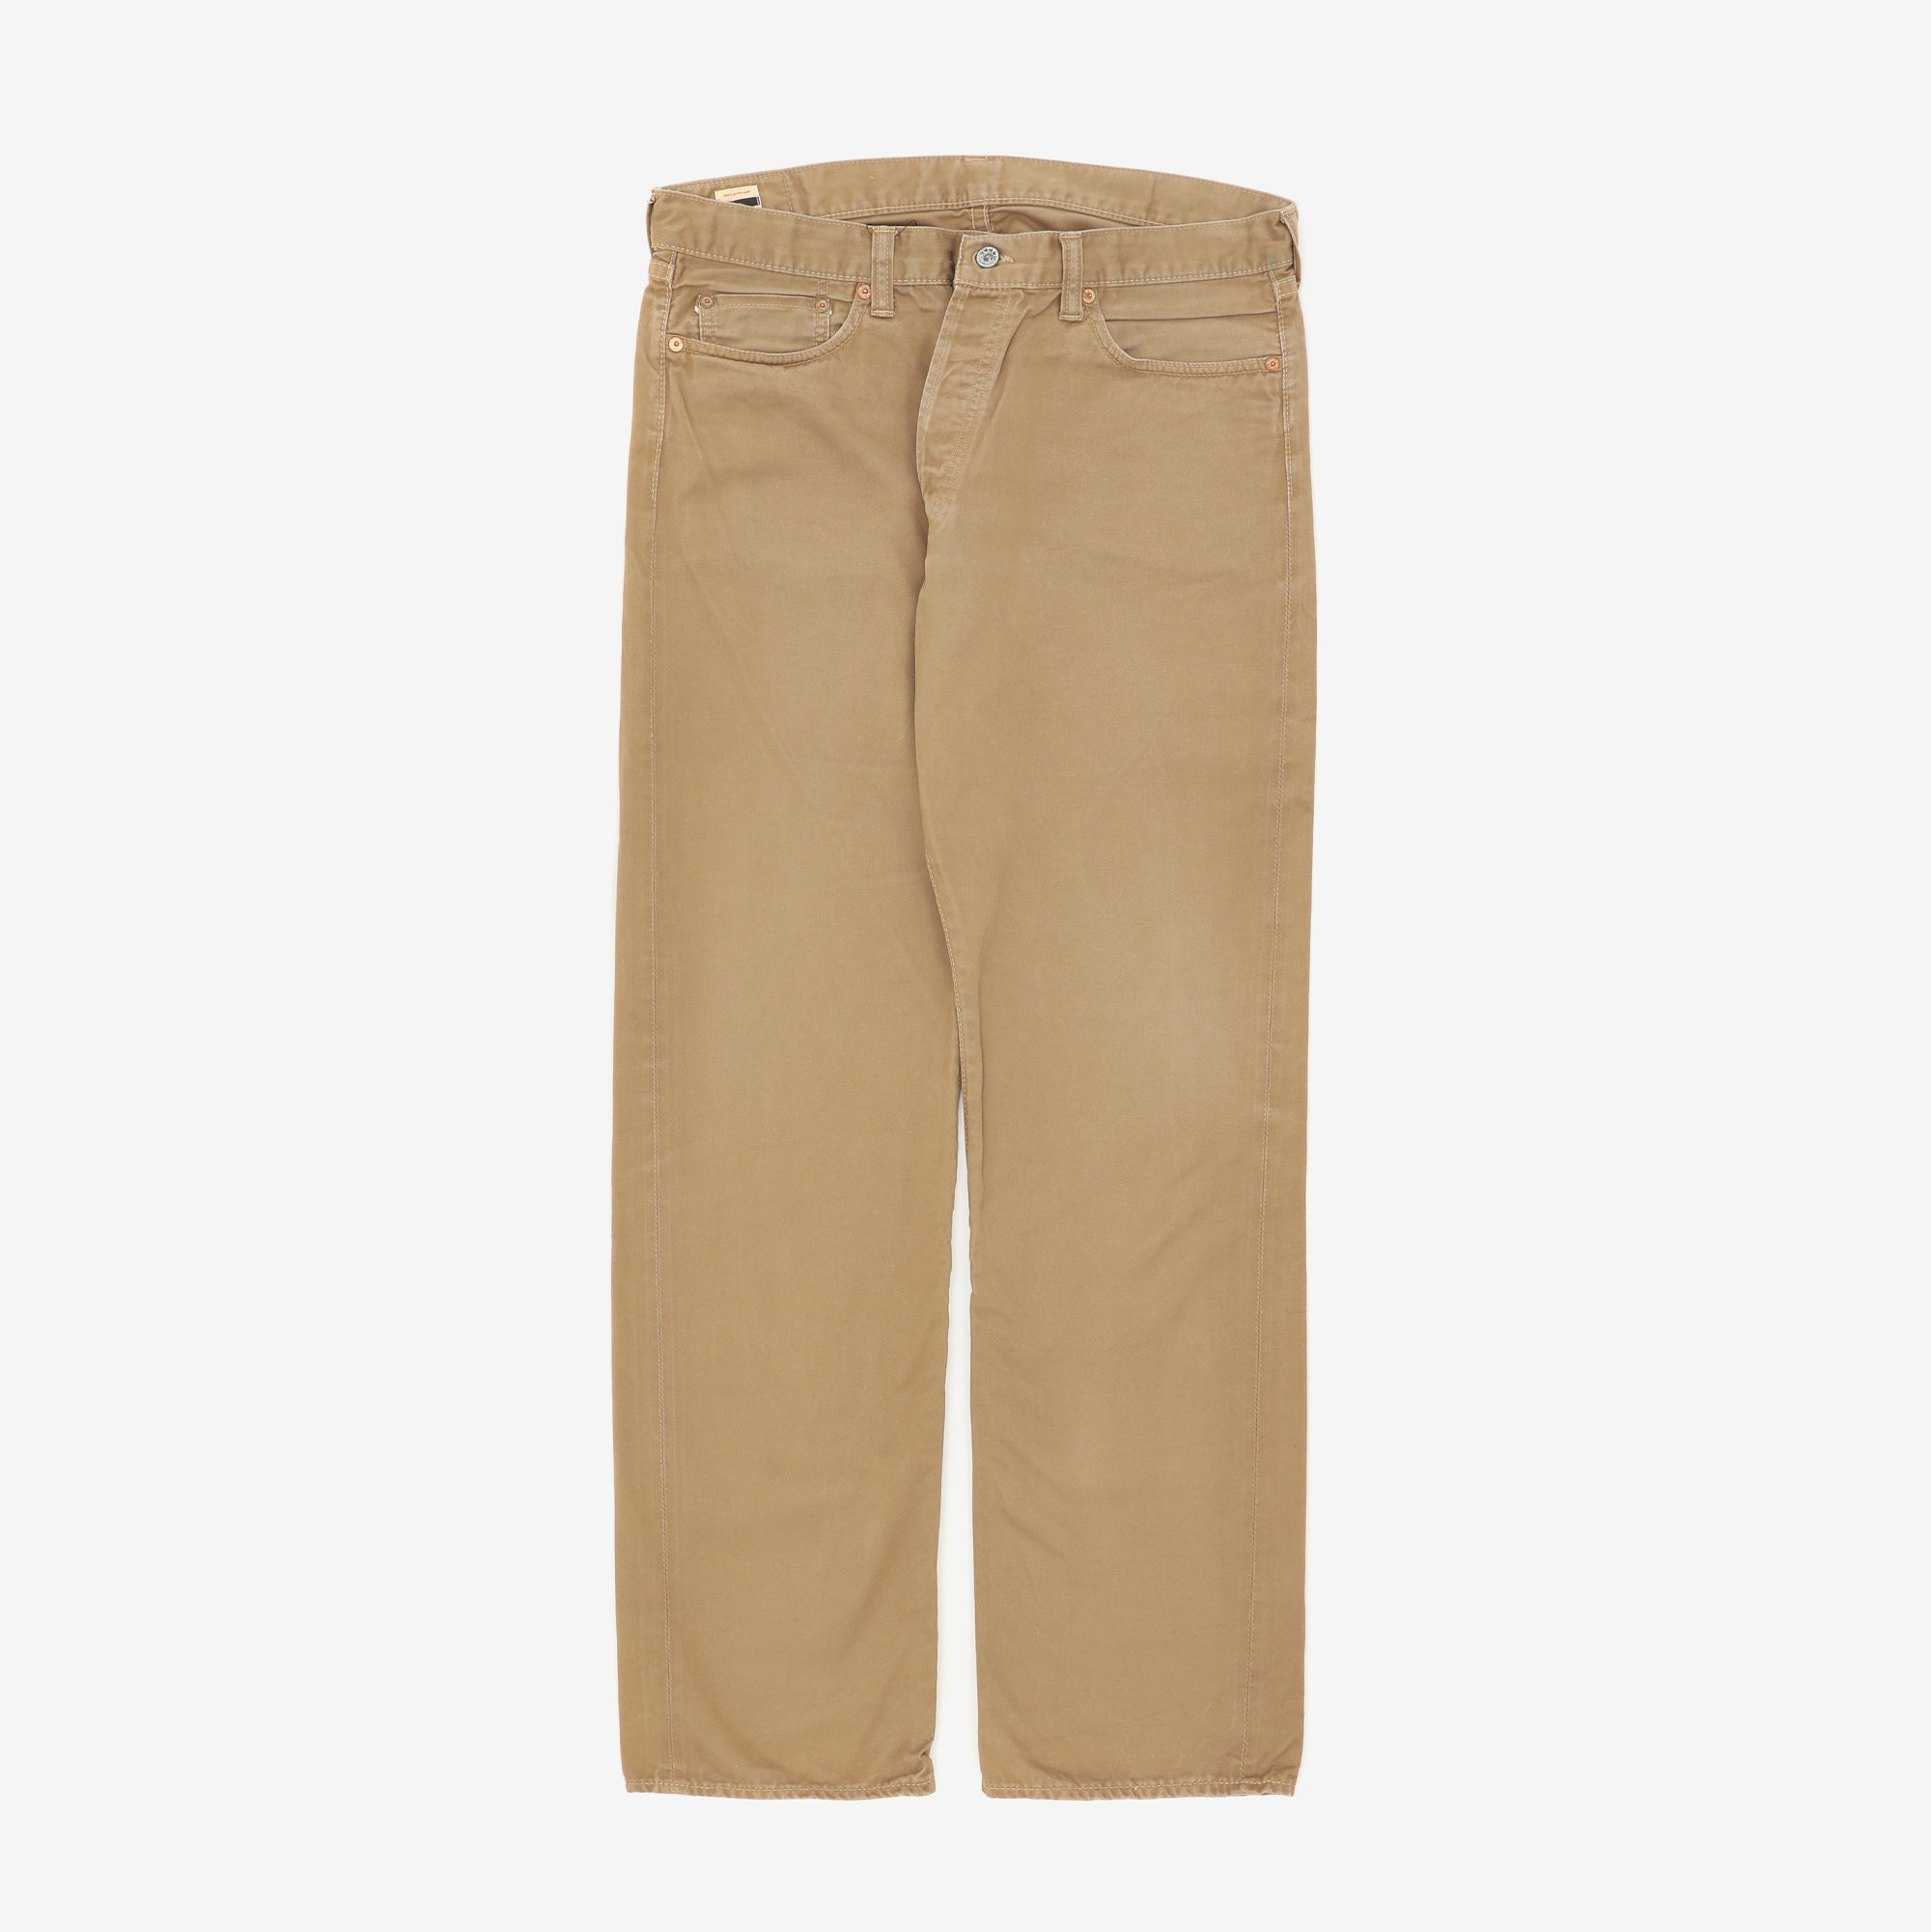 Going To Battle Selvedge Westpoint Chinos